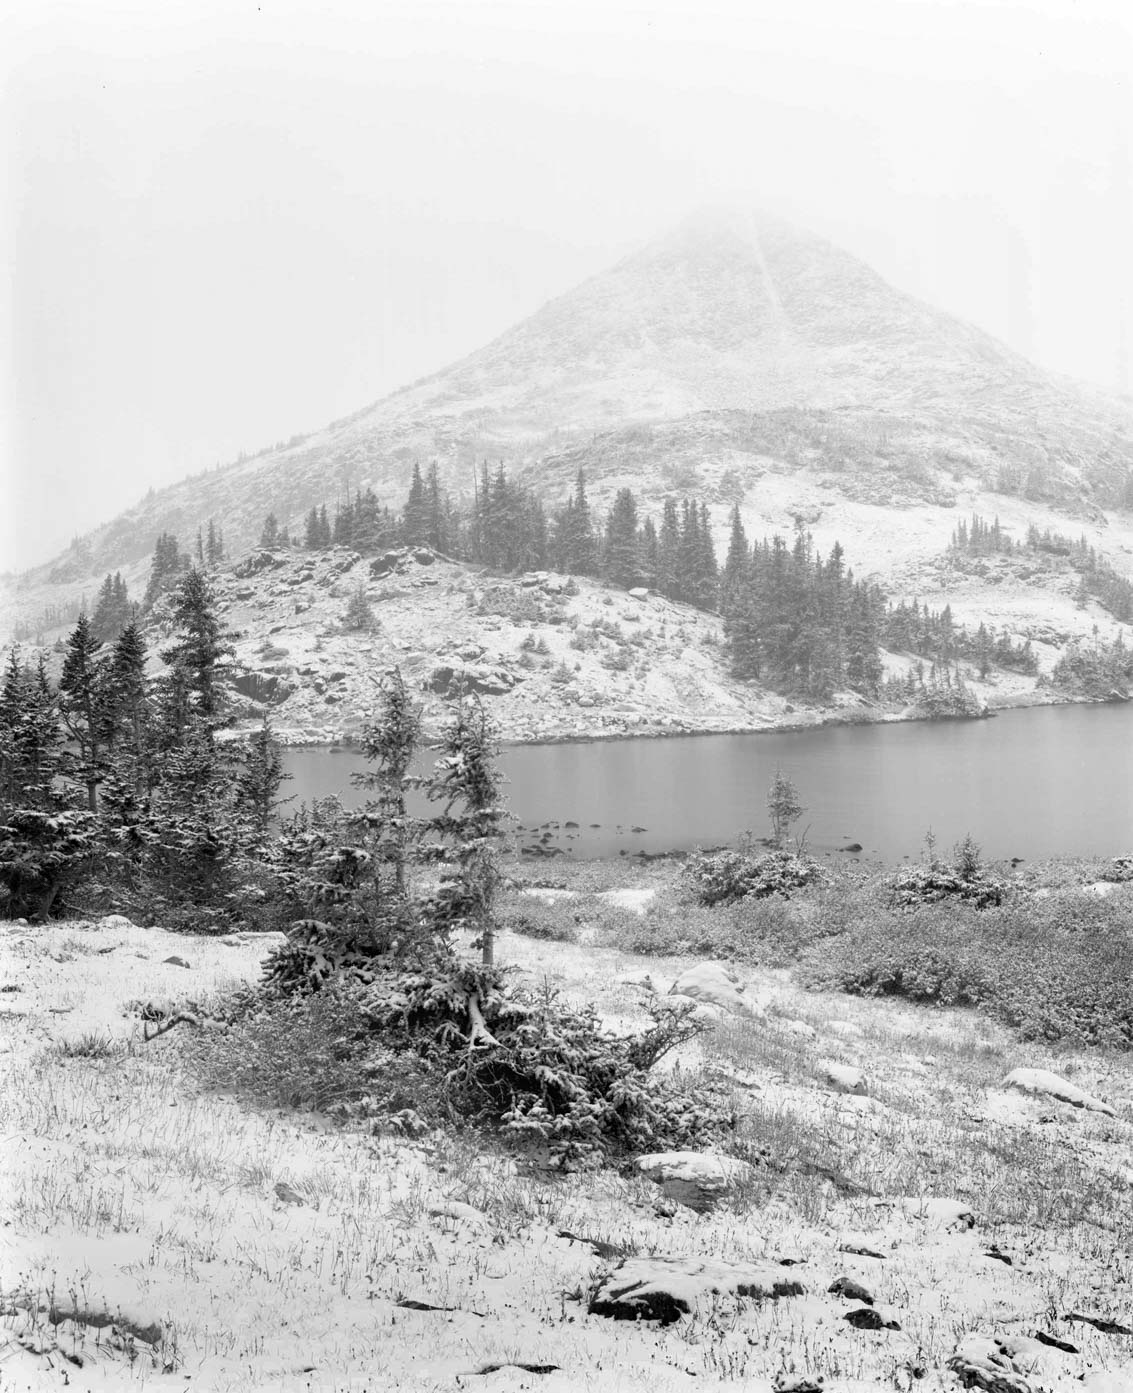 View from Lewis Lake - Shot on 8x10 ILFORD Delta 100 Professional film,Burke and James Camera,360mm lens,1-minute exposure at f/45